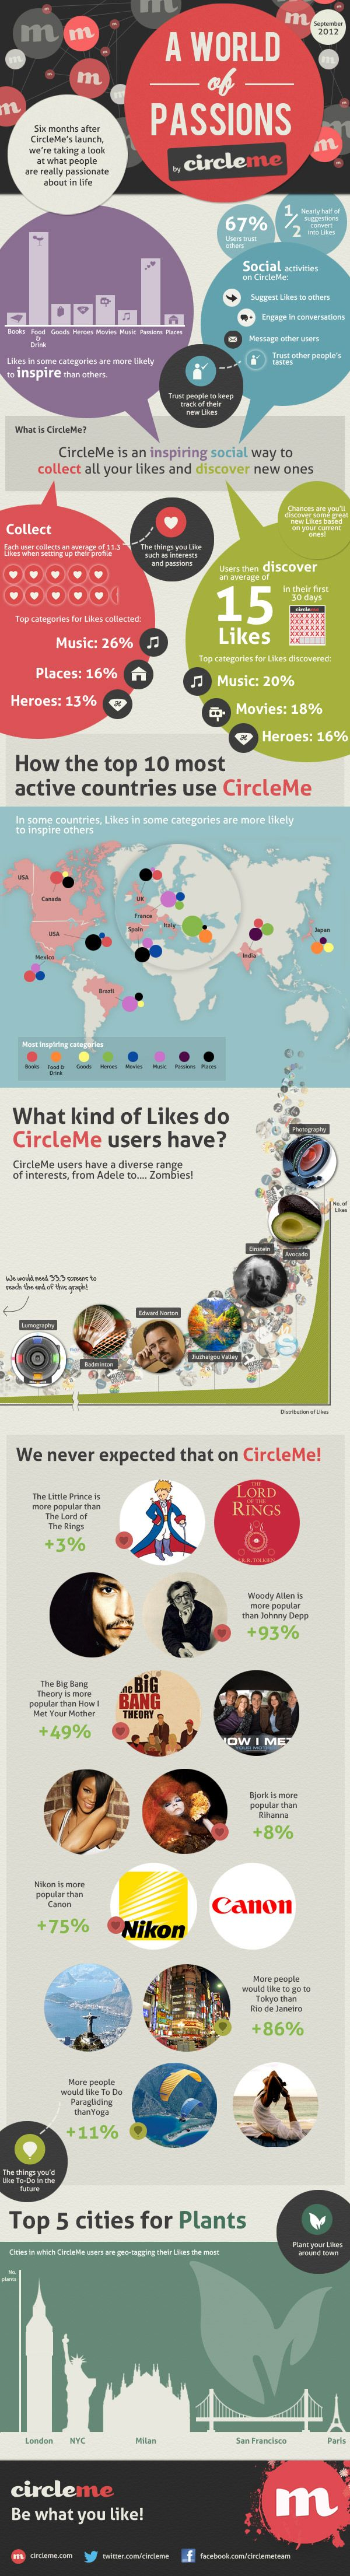 CircleMe: Innovative Social Network Helps You Collect What You Love